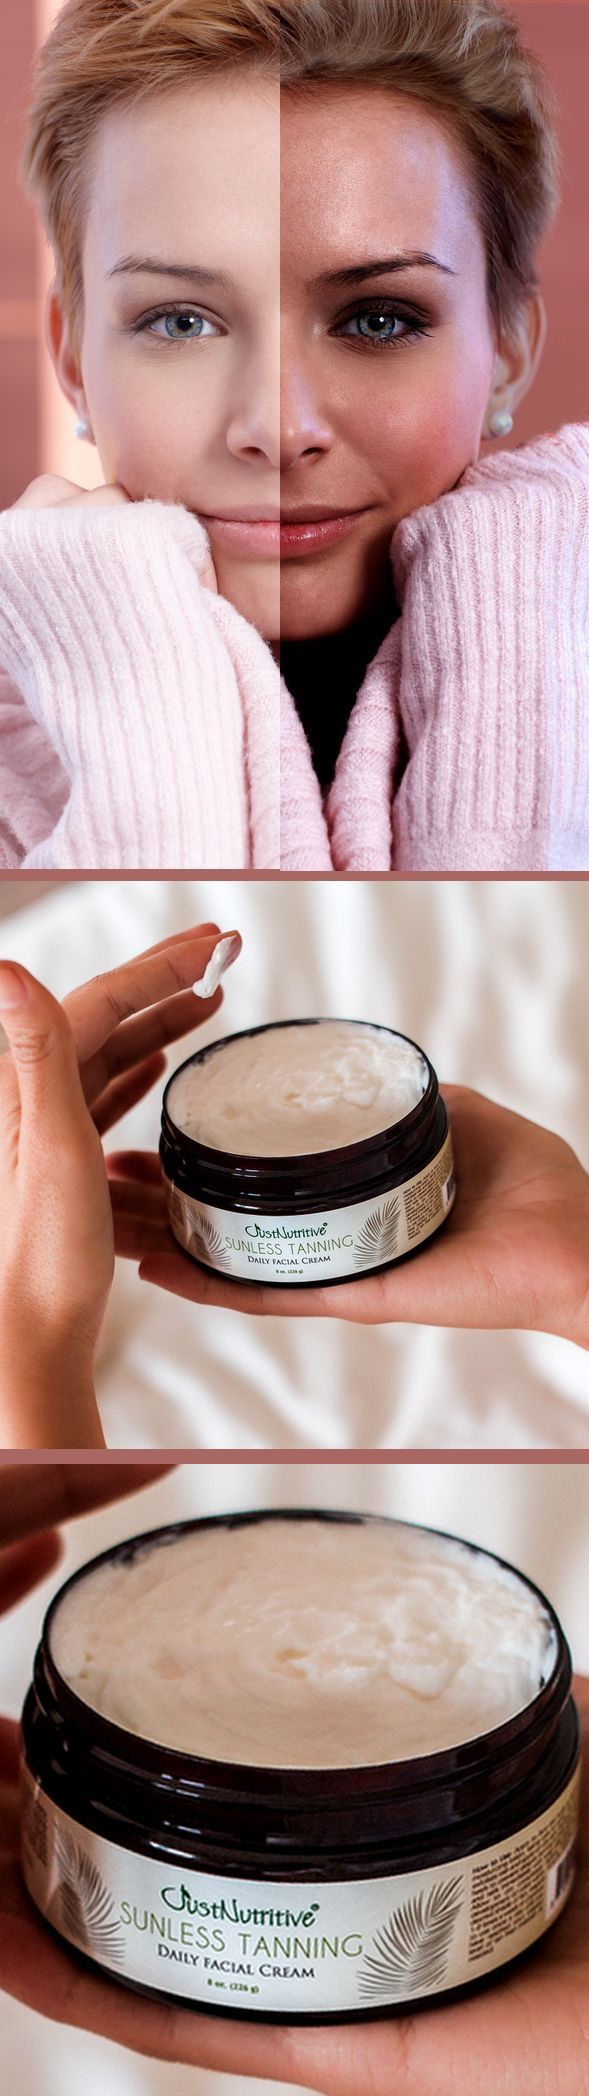 Sunless Tanning - Daily Facial Cream. •Finally, getting a natural glow only our face is easy! Get a beautiful subtle facial tan while keeping your skin moisturized and healthy